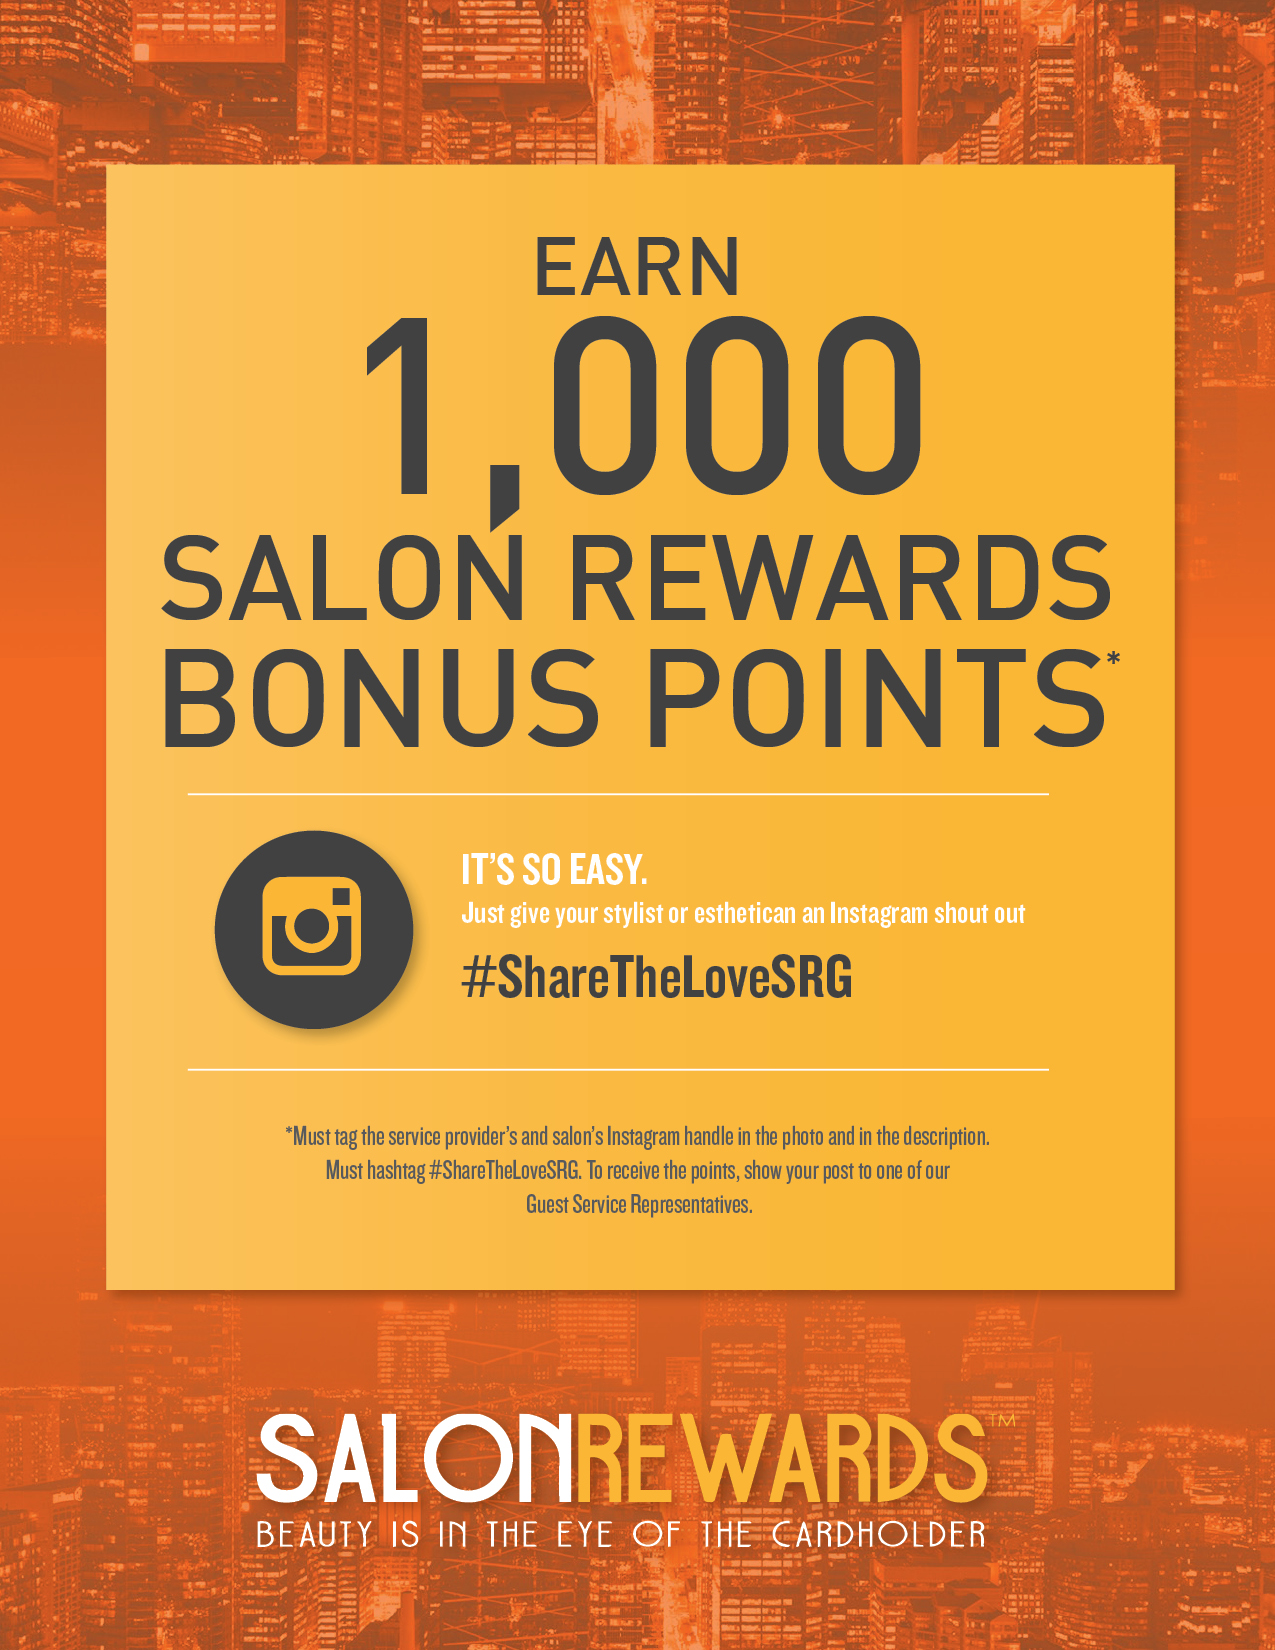 Earn 1,000 Salon Reward Bonsu Points for Instagram shout out